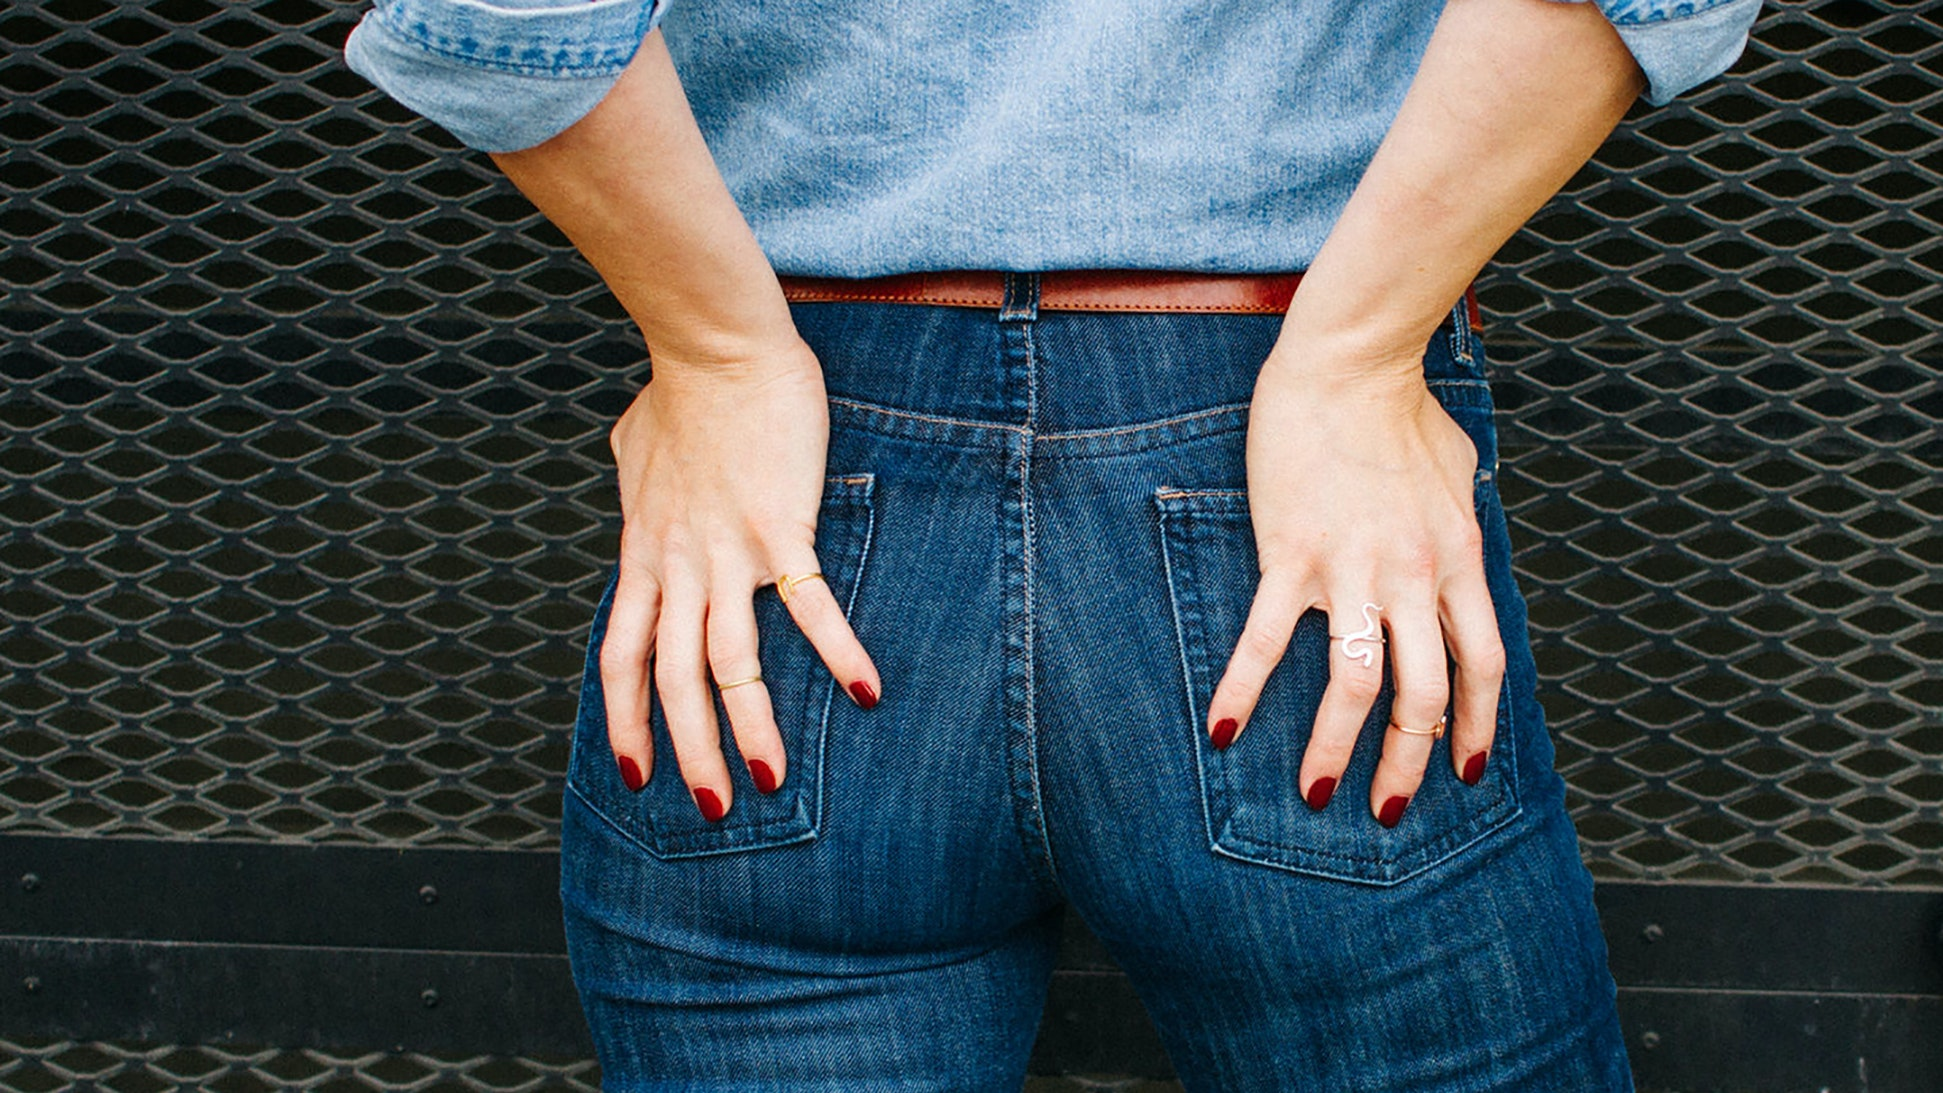 4 Things You Need to Know About Getting a Better-Looking Area Under Your Derrière